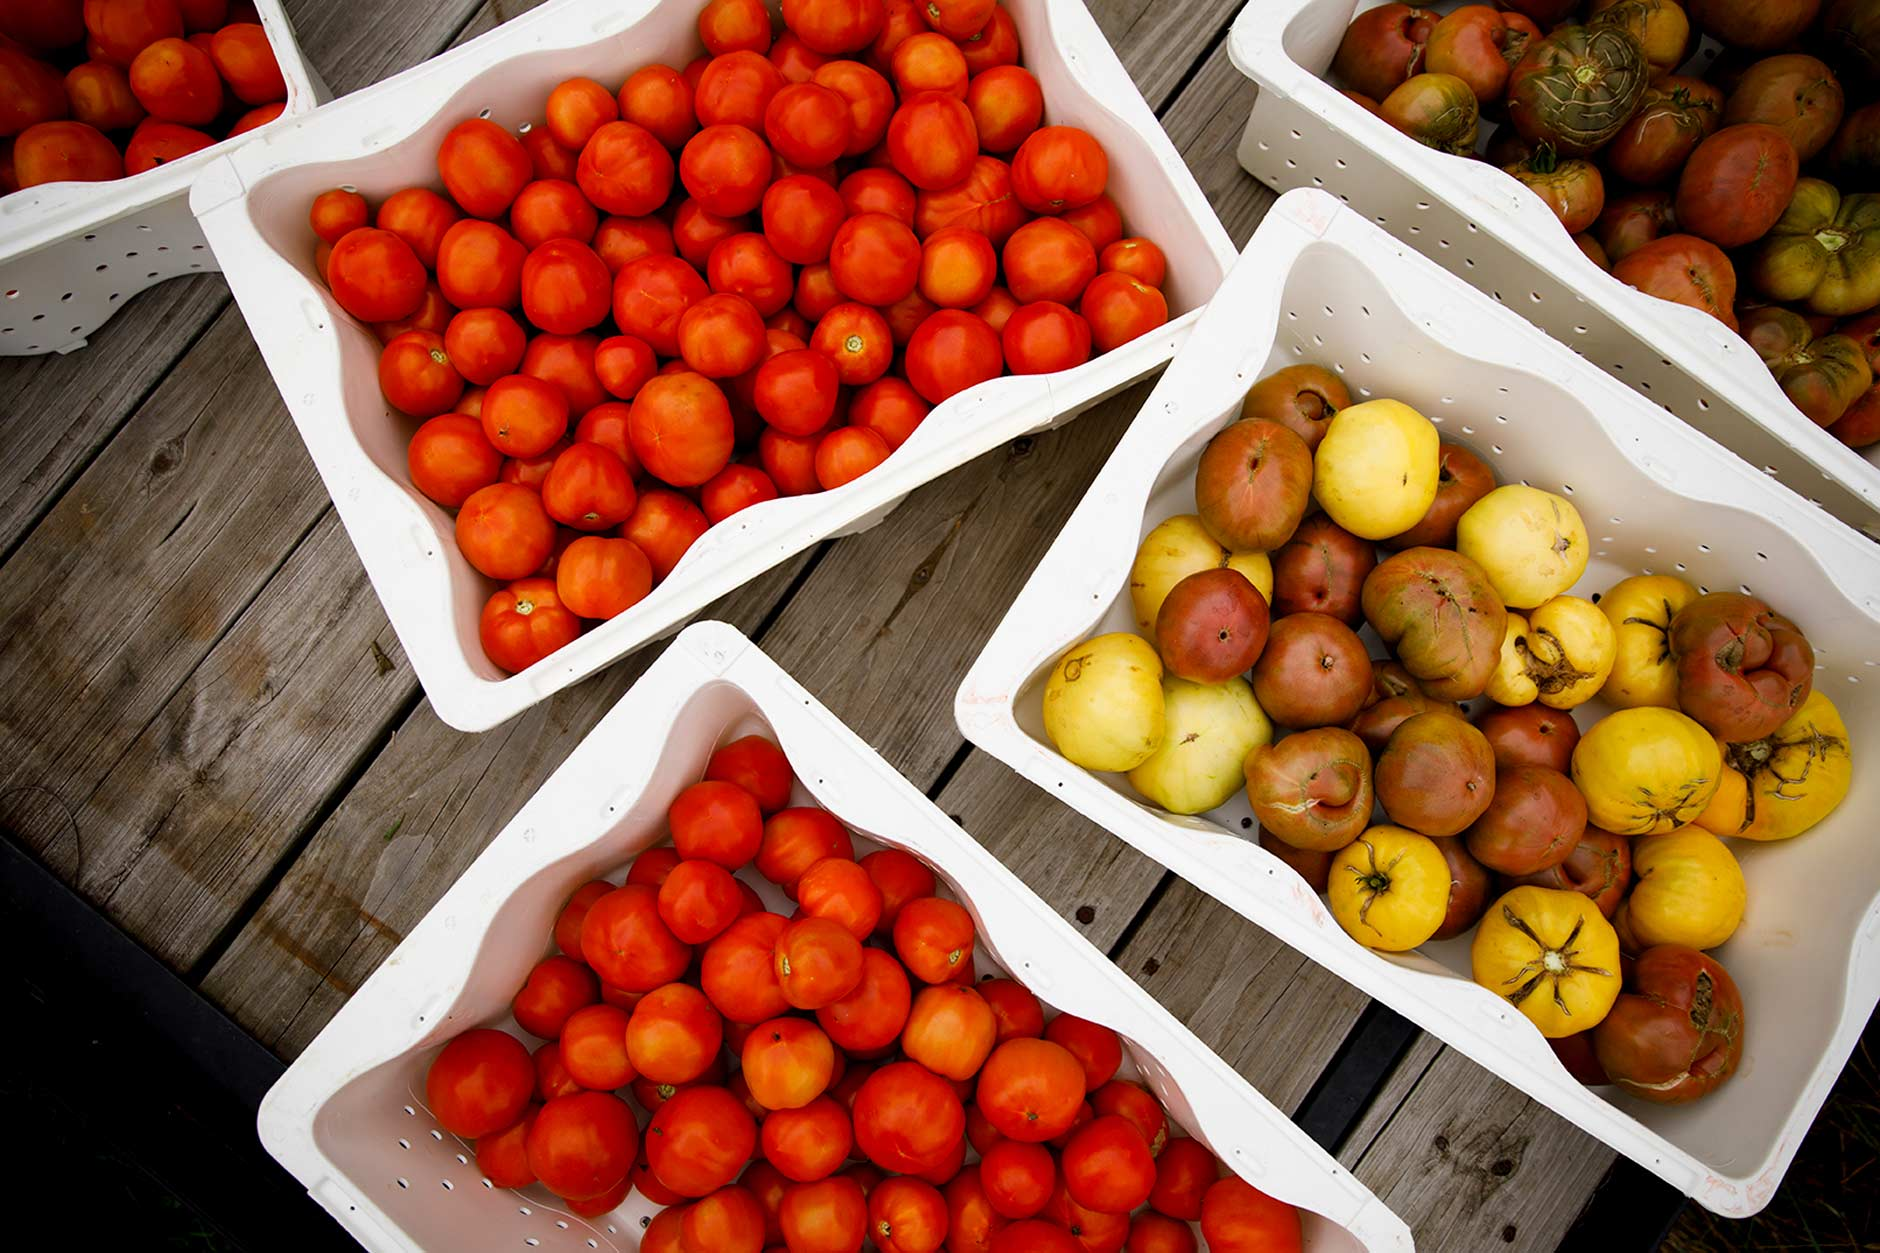 A selection of freshly-harvested new girl (red) and heirloom (yellow, brown, green) tomatoes are sorted into bins at the IU Campus Farm on Friday, Sept. 7, 2018. (James Brosher/IU Communications)